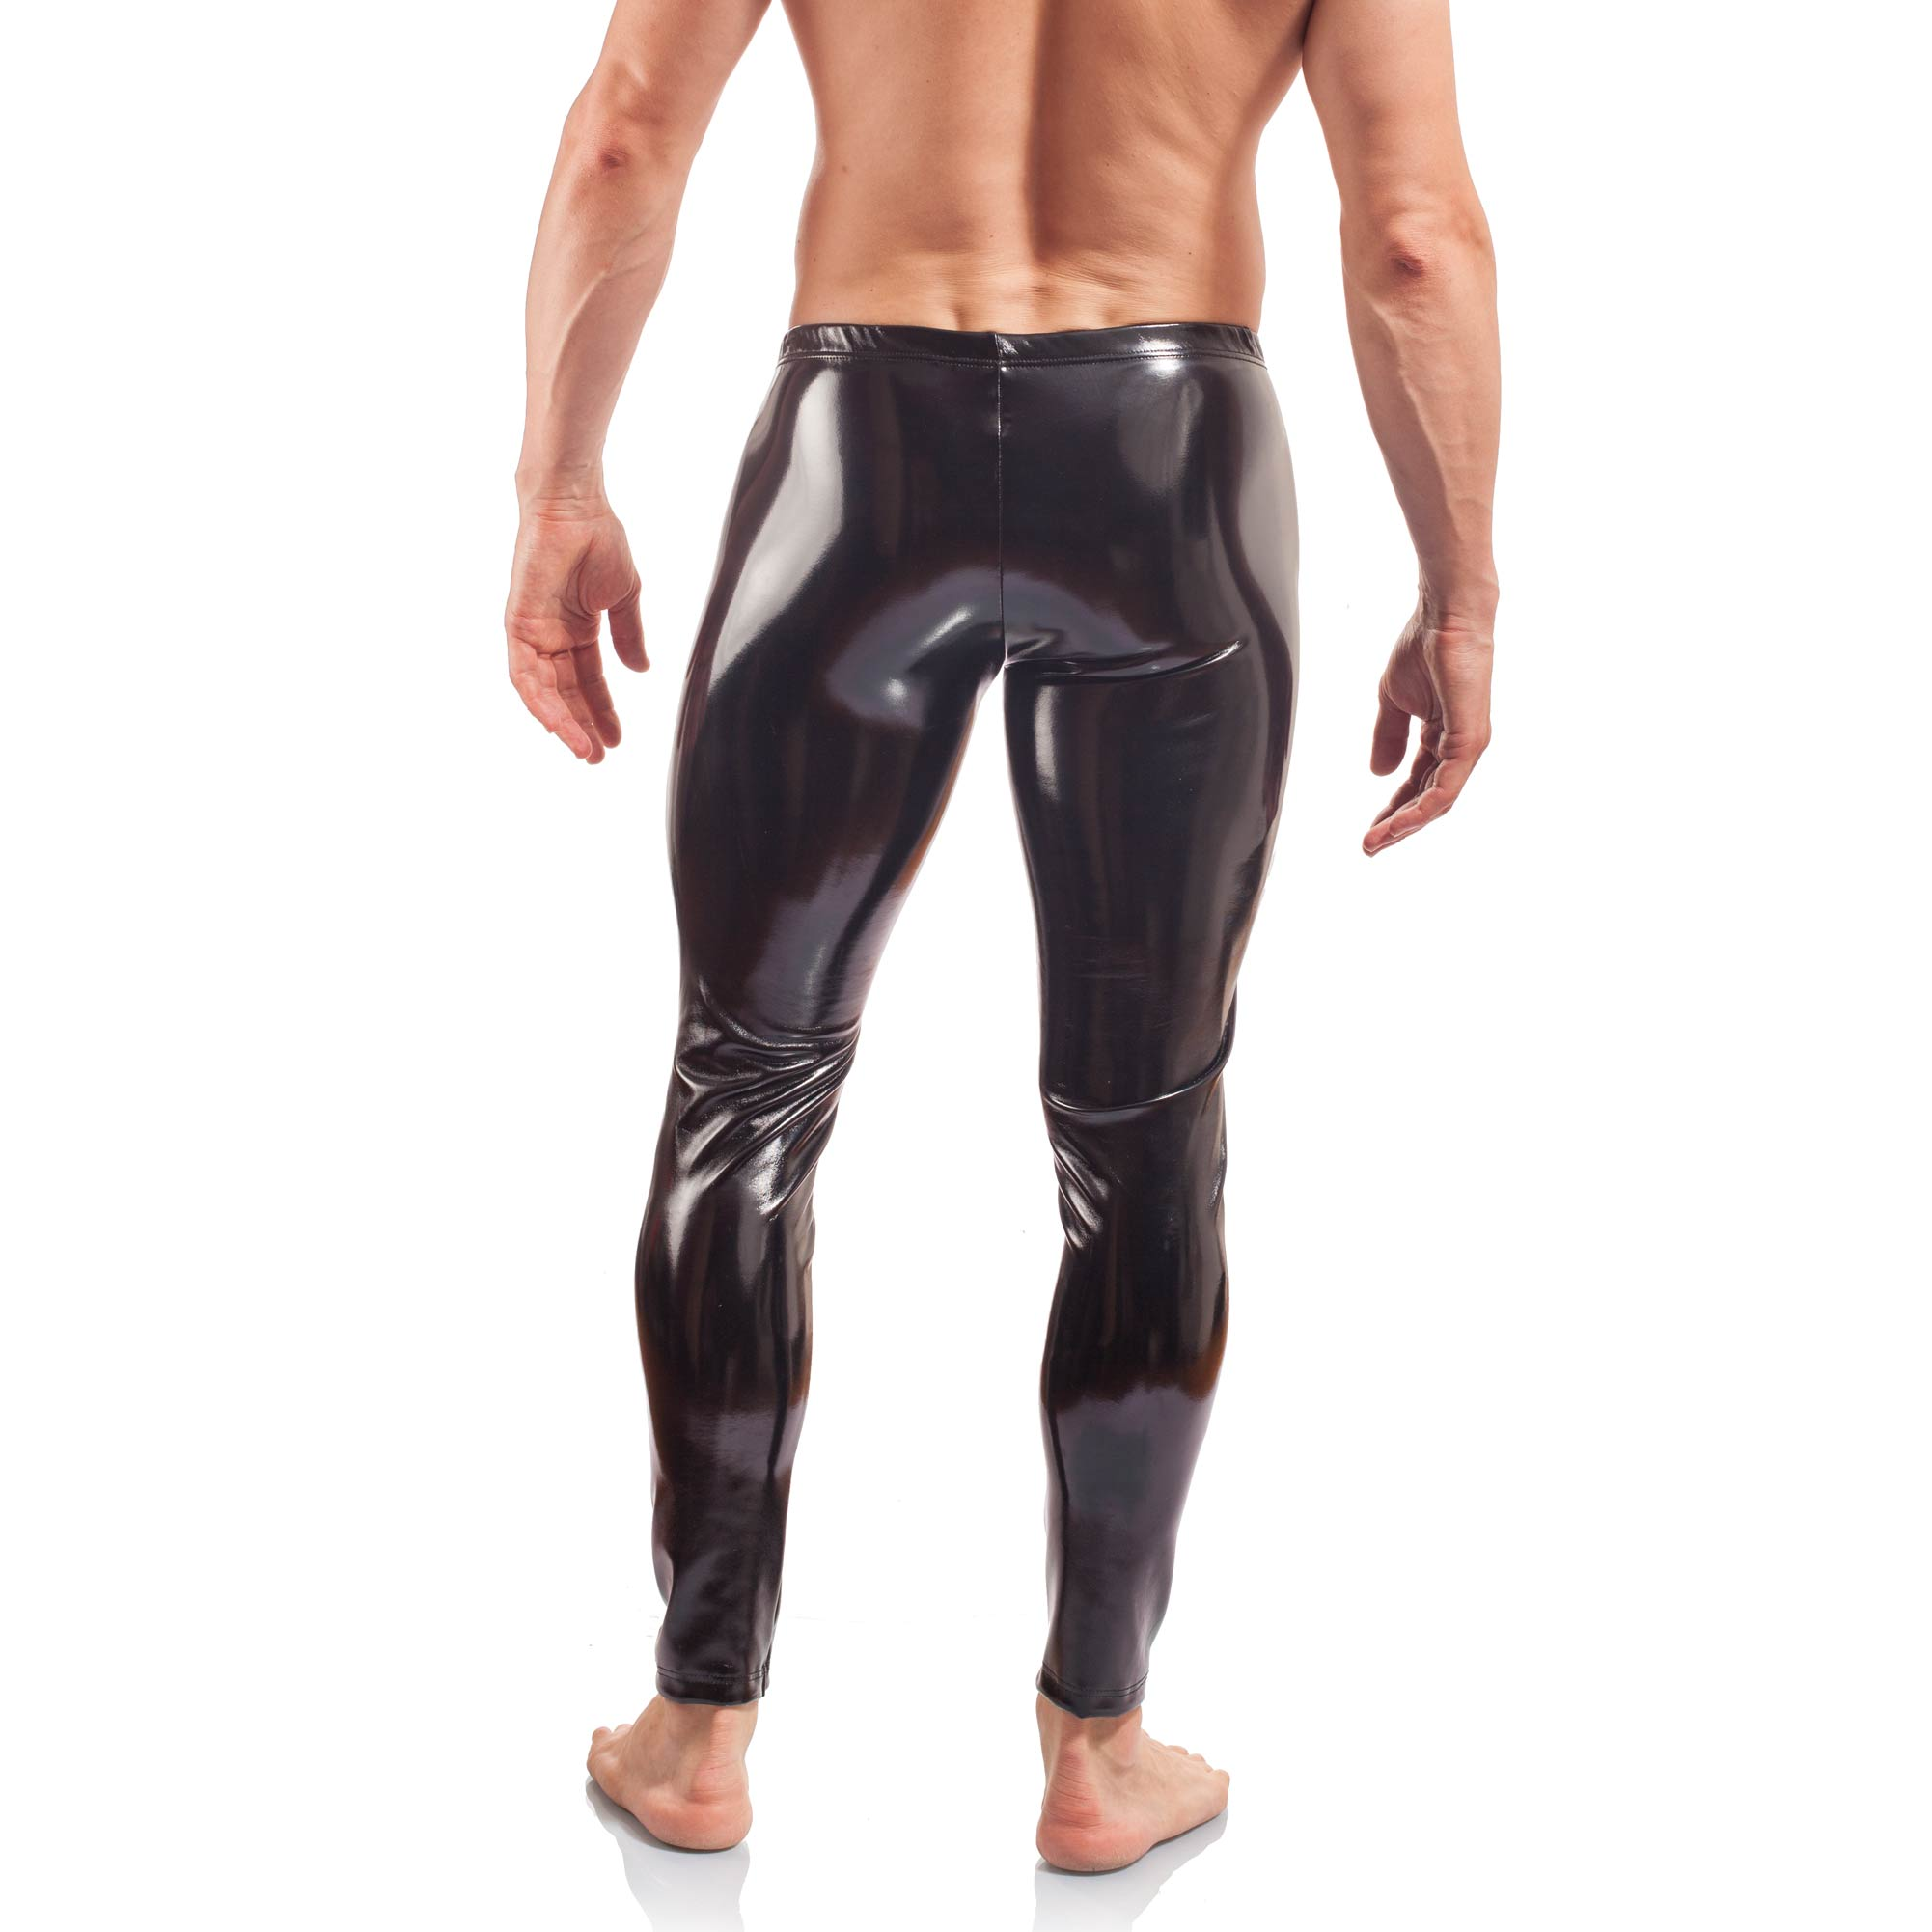 lack leggings man, glossy wet leather leggings, schwarze lack Leggings, Glanzhose, Fetischhose, Rubber Gummi Hose